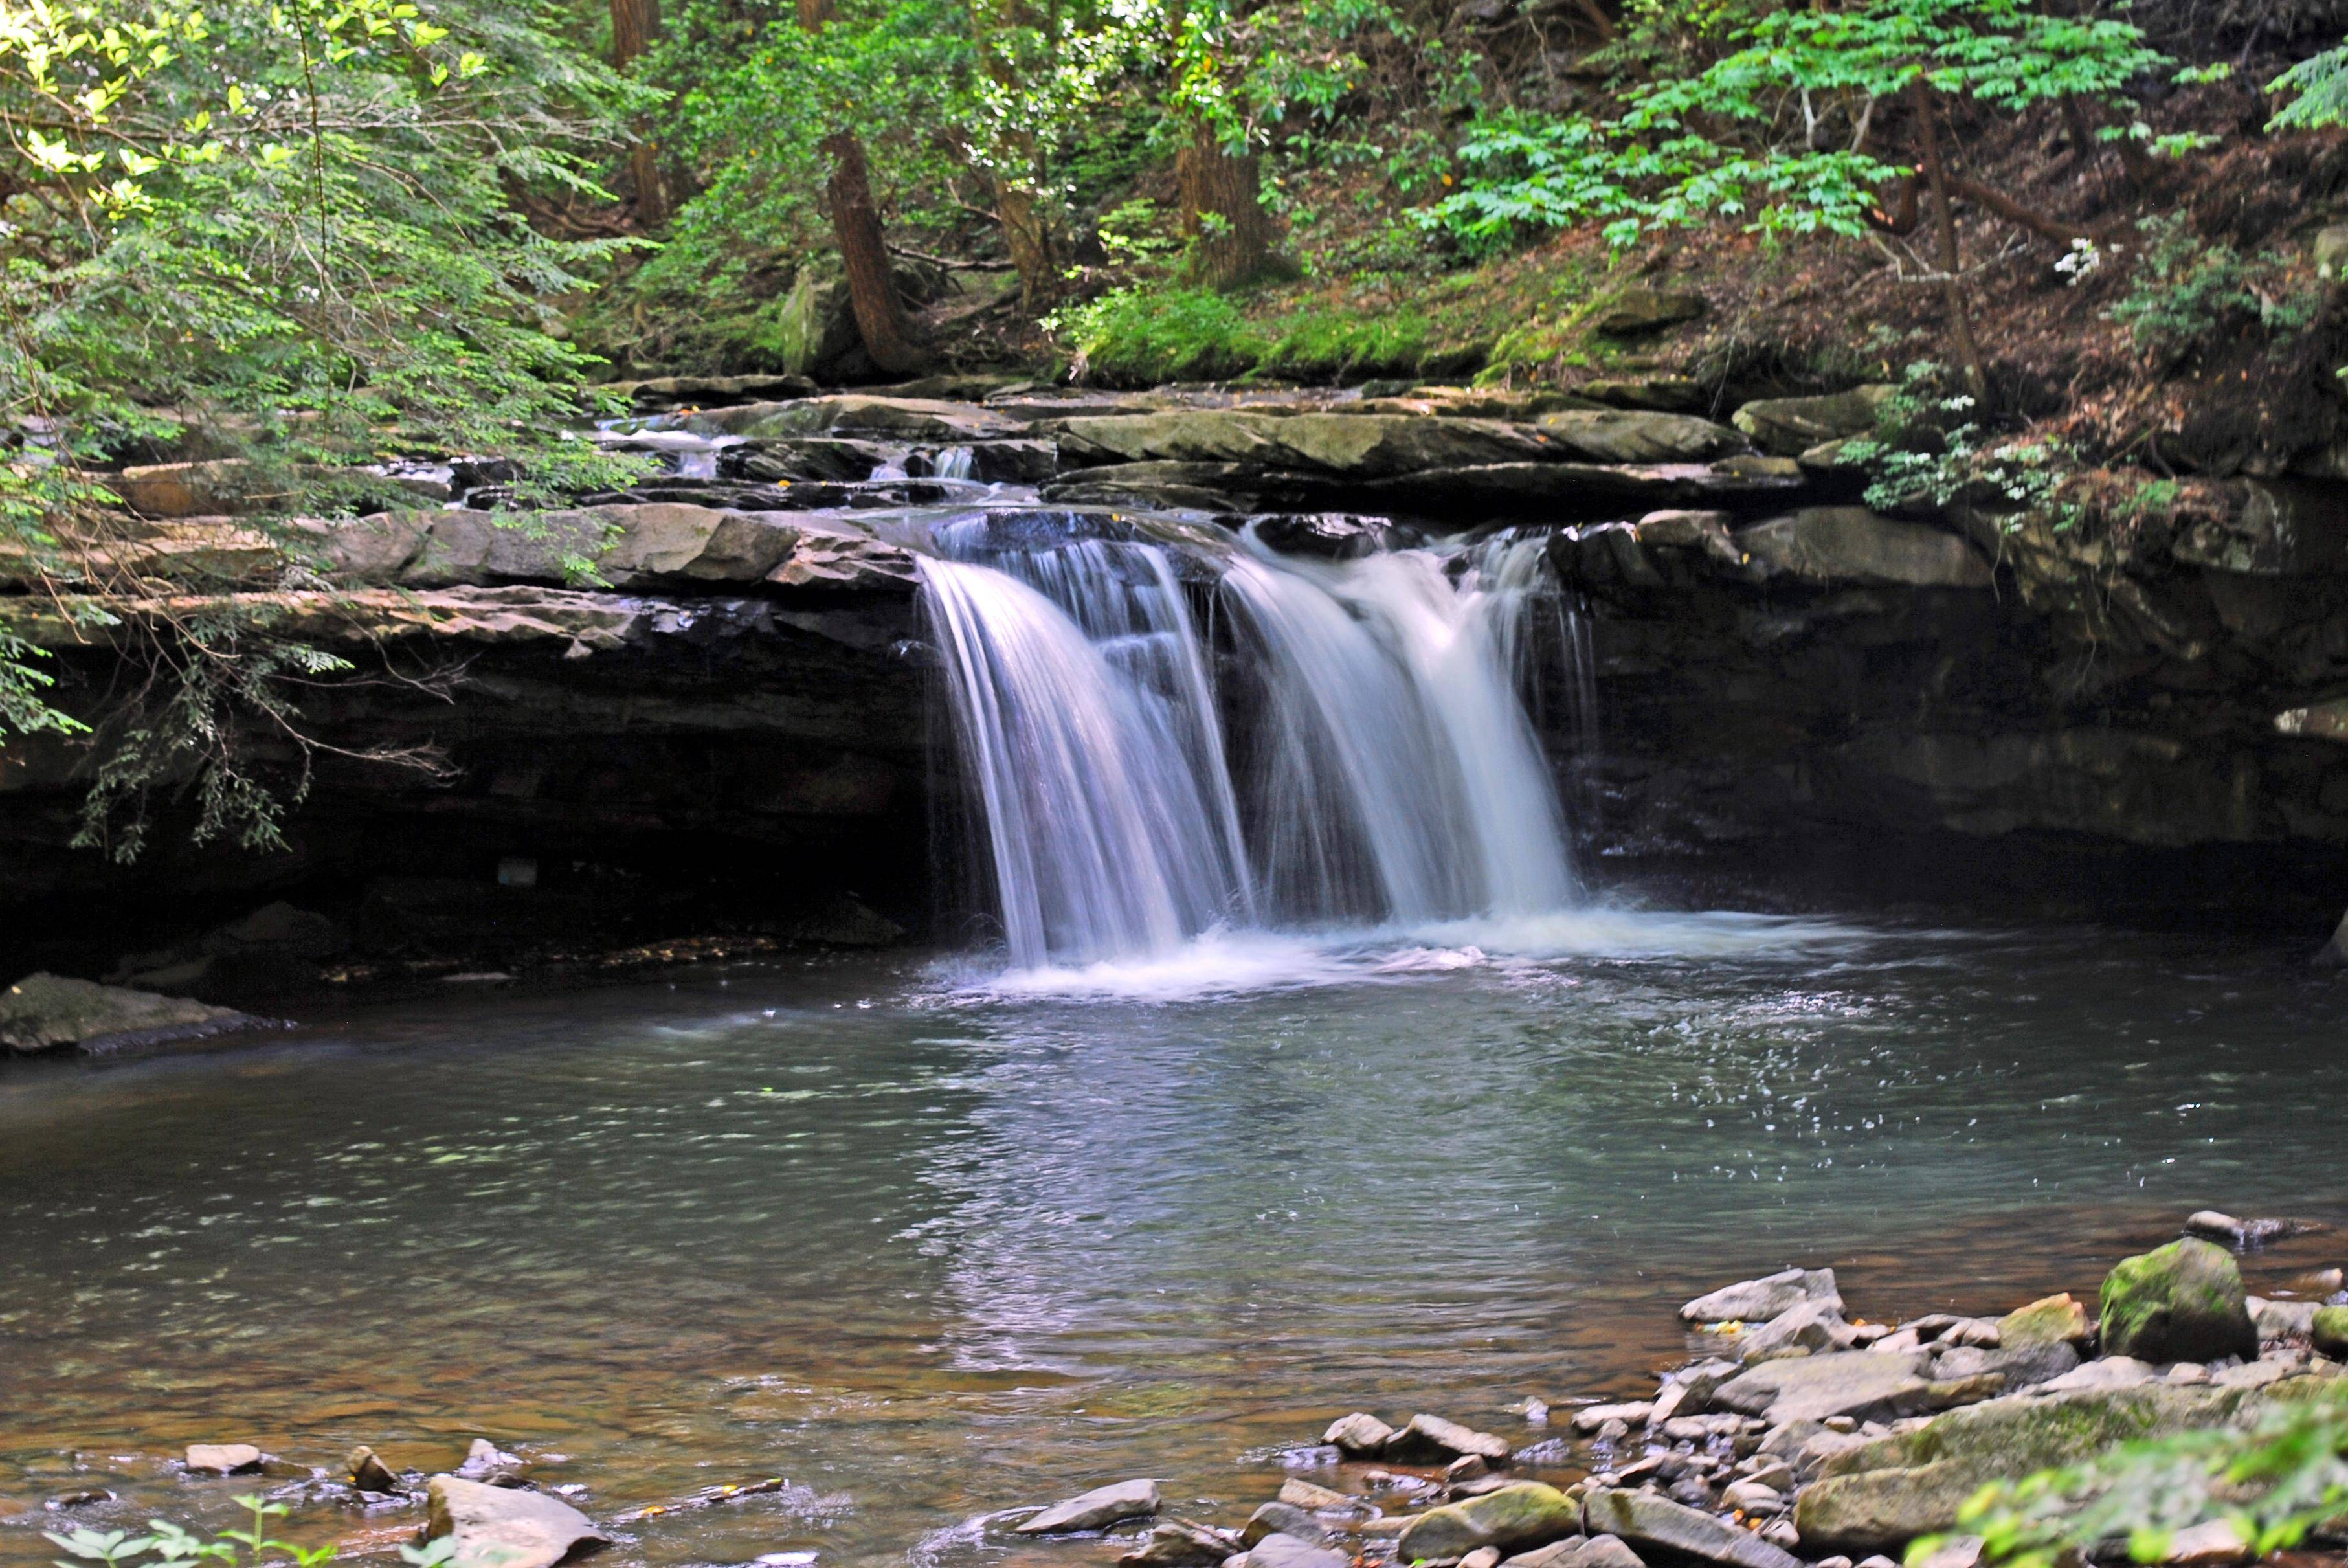 1 hike, 5 waterfalls at Grundy Forest - NOOGAtoday